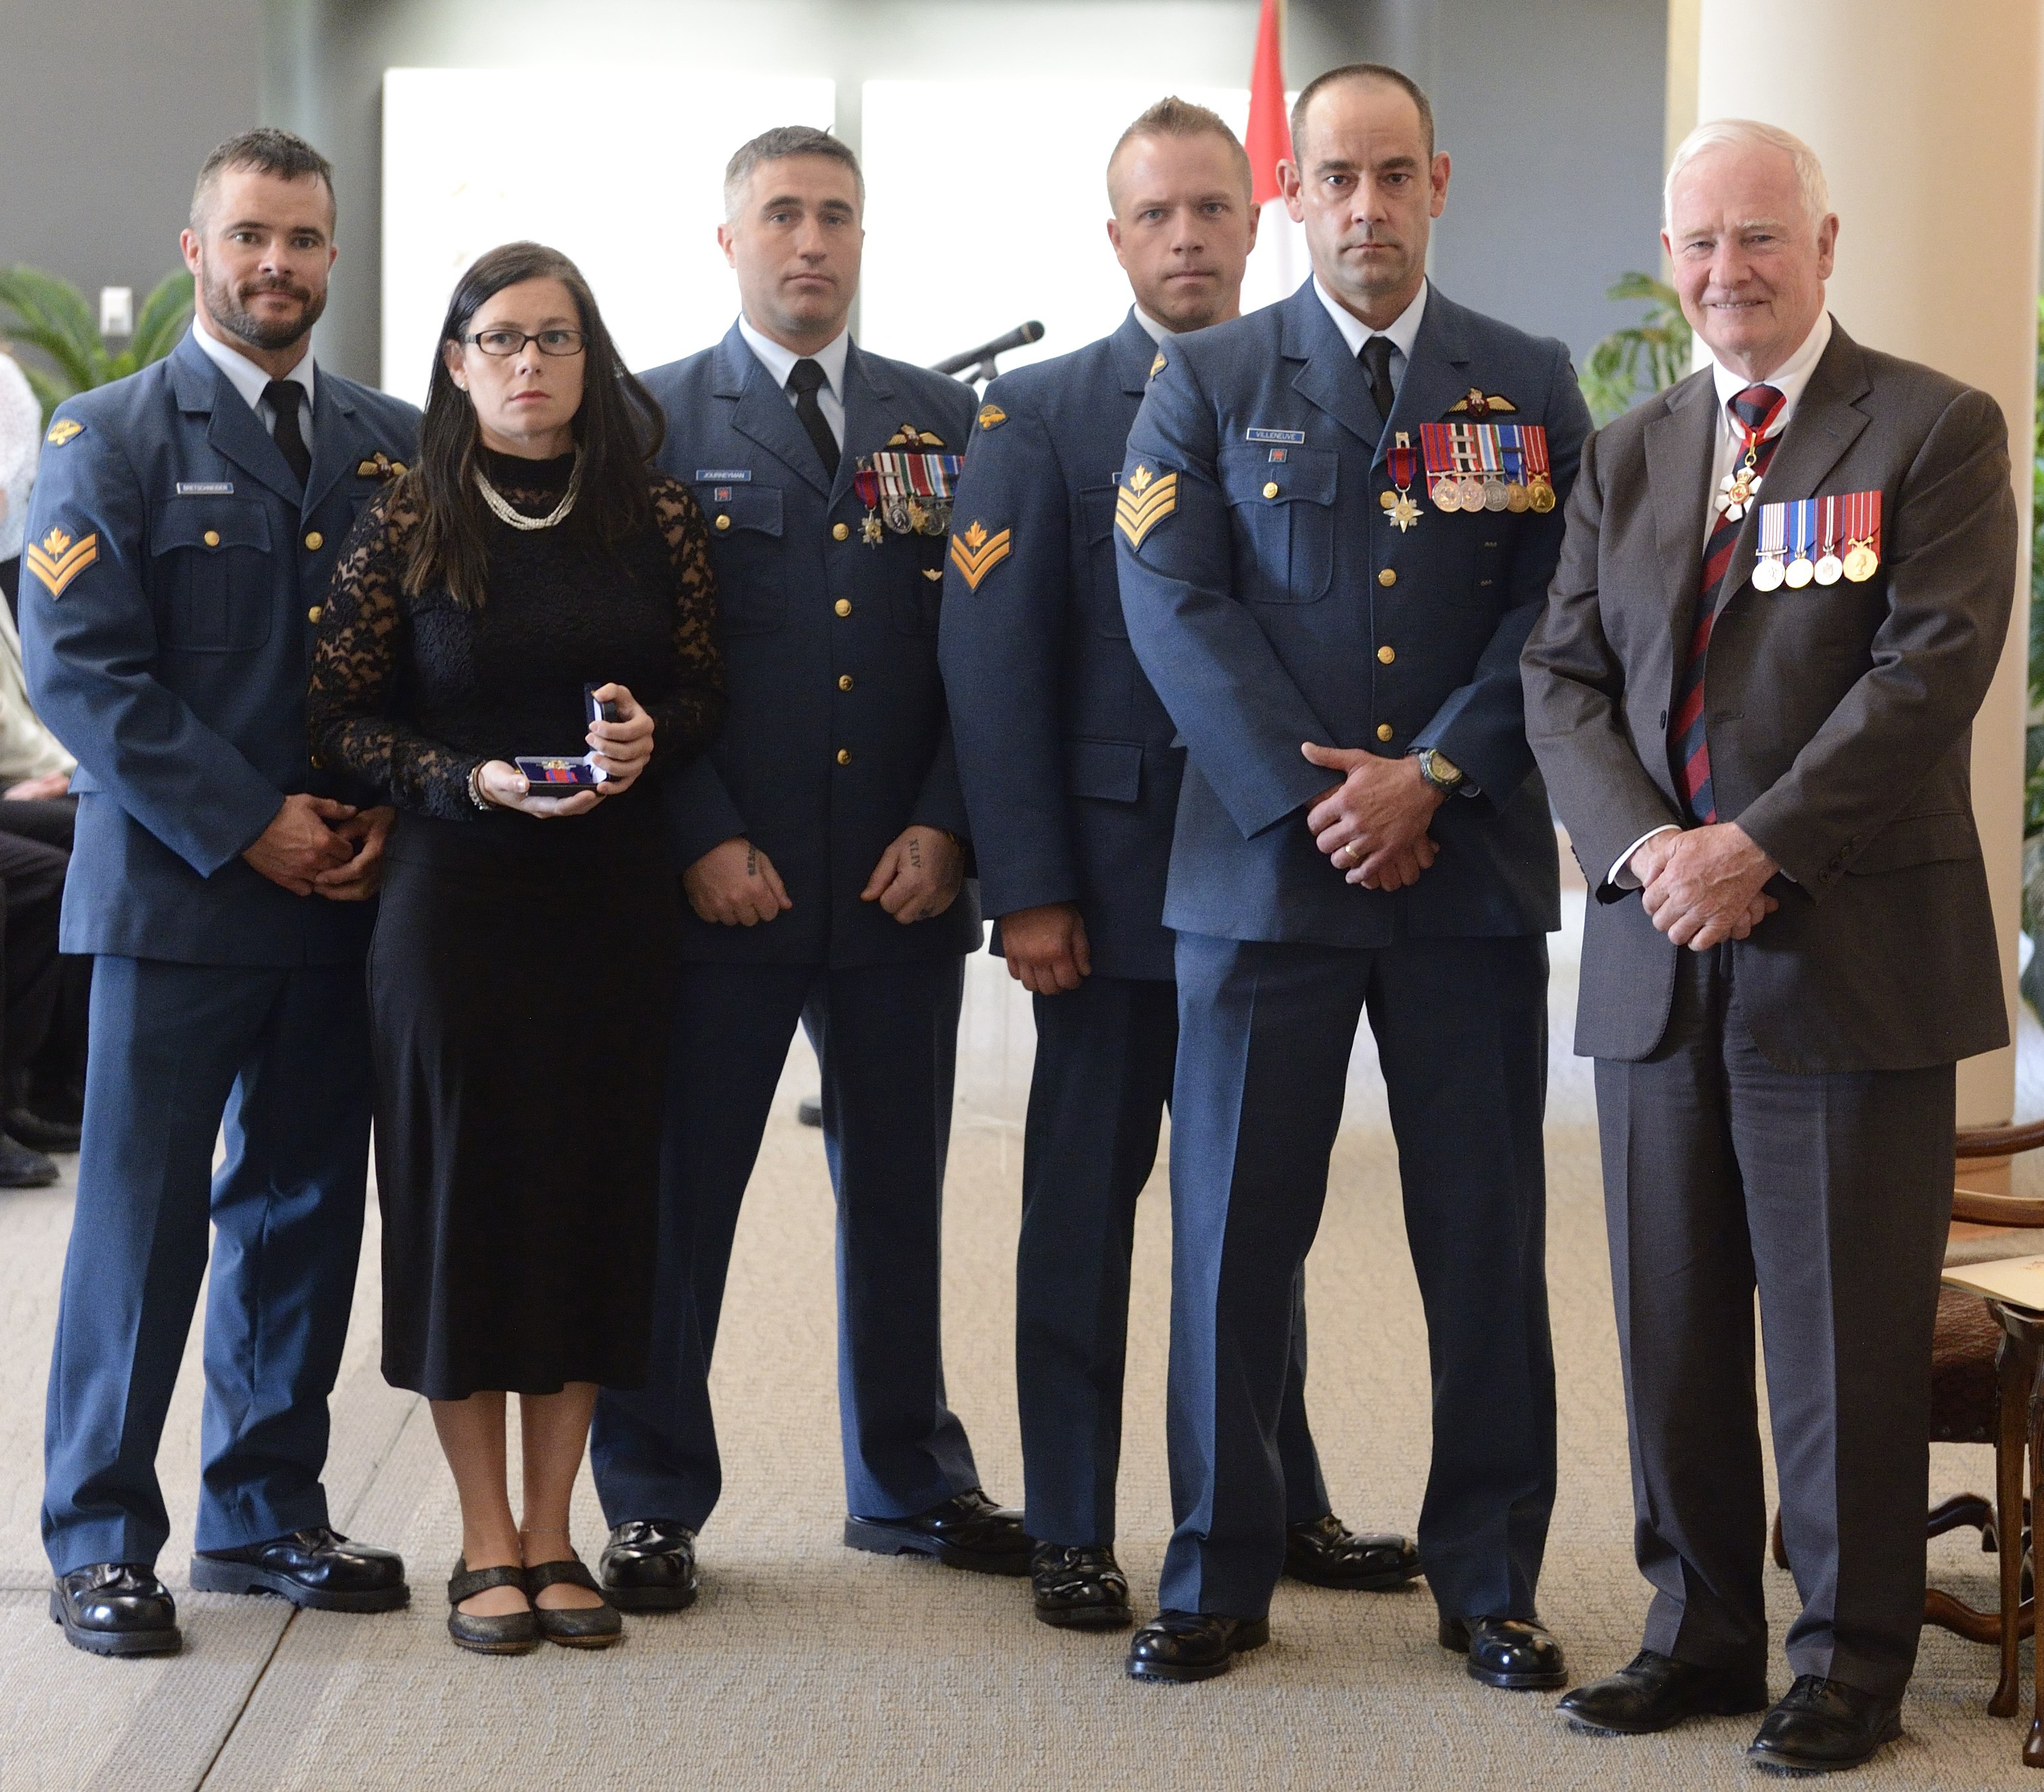 A Royal Canadian Air Force search and rescue team received the Star of Courage for a rescue in Nunavut in late 2011.